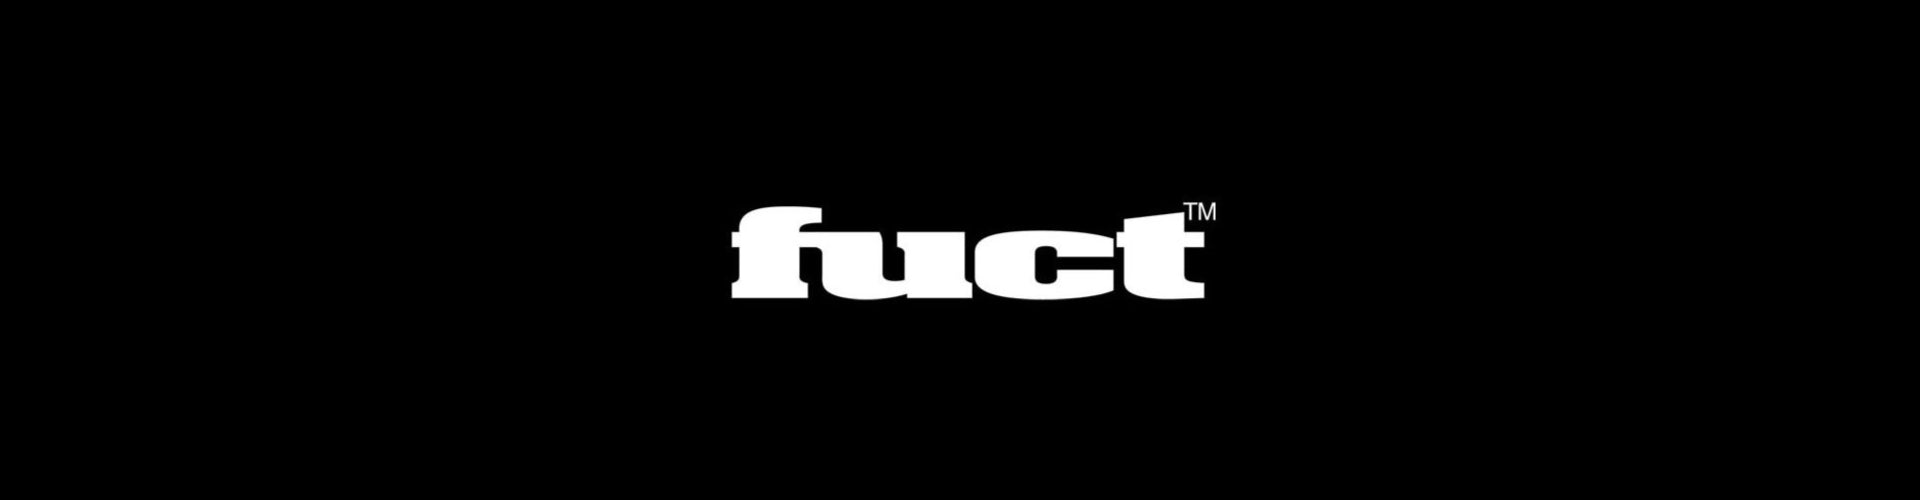 Fuct at Crossover